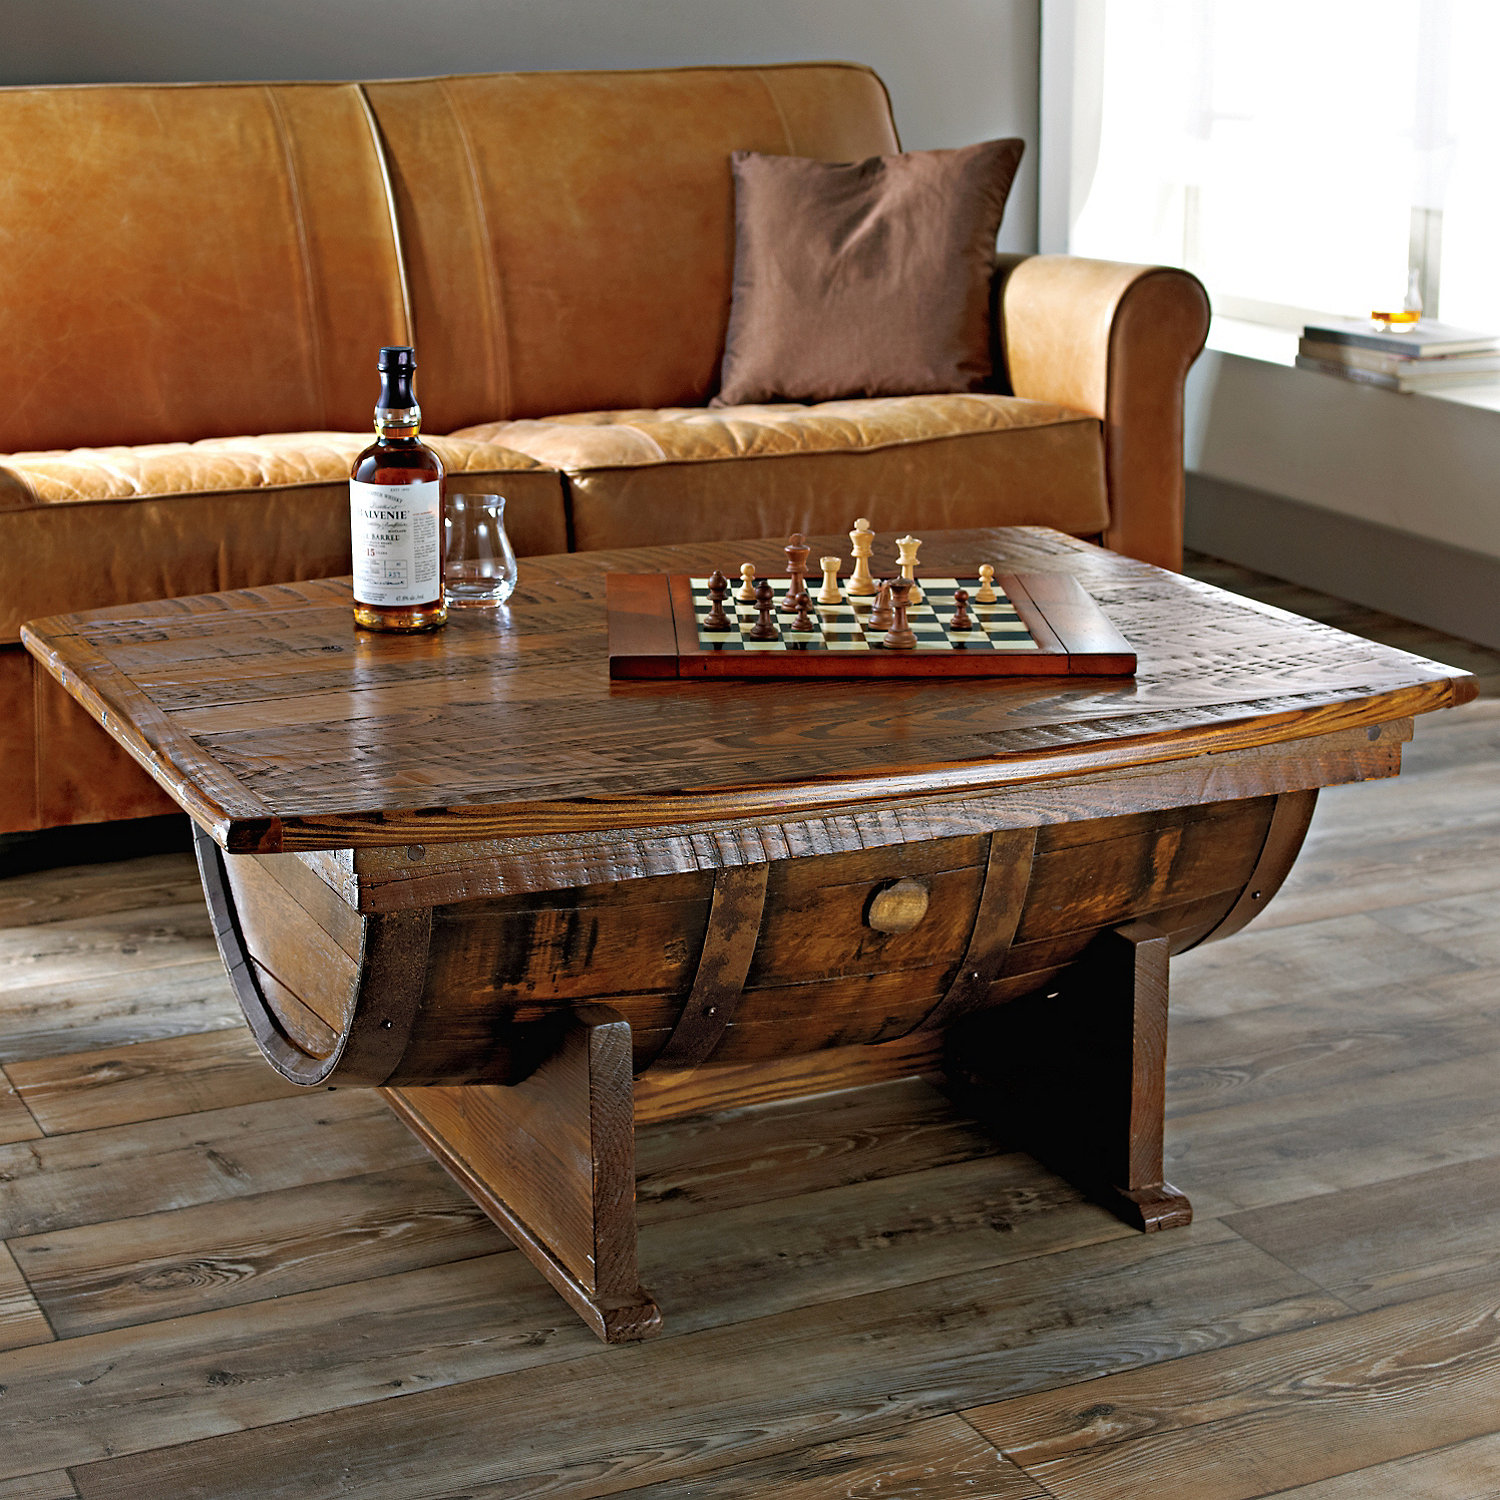 Beautiful wine barrel coffee table from The Wine Enthusiast